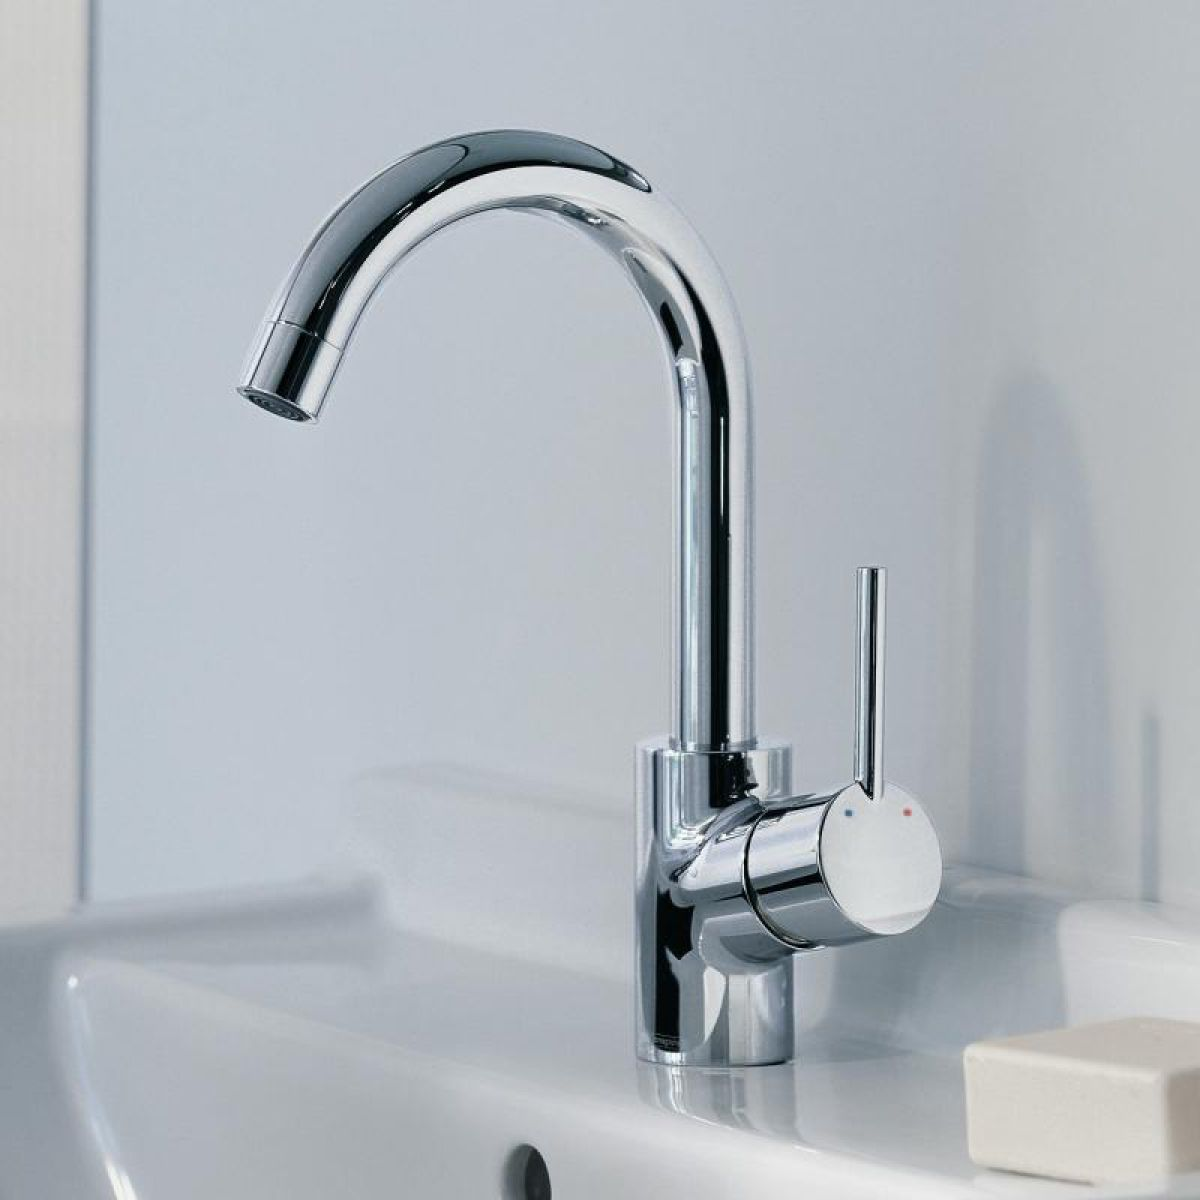 Hans Grohe Hansgrohe Talis 39s Single Lever Basin Mixer Uk Bathrooms